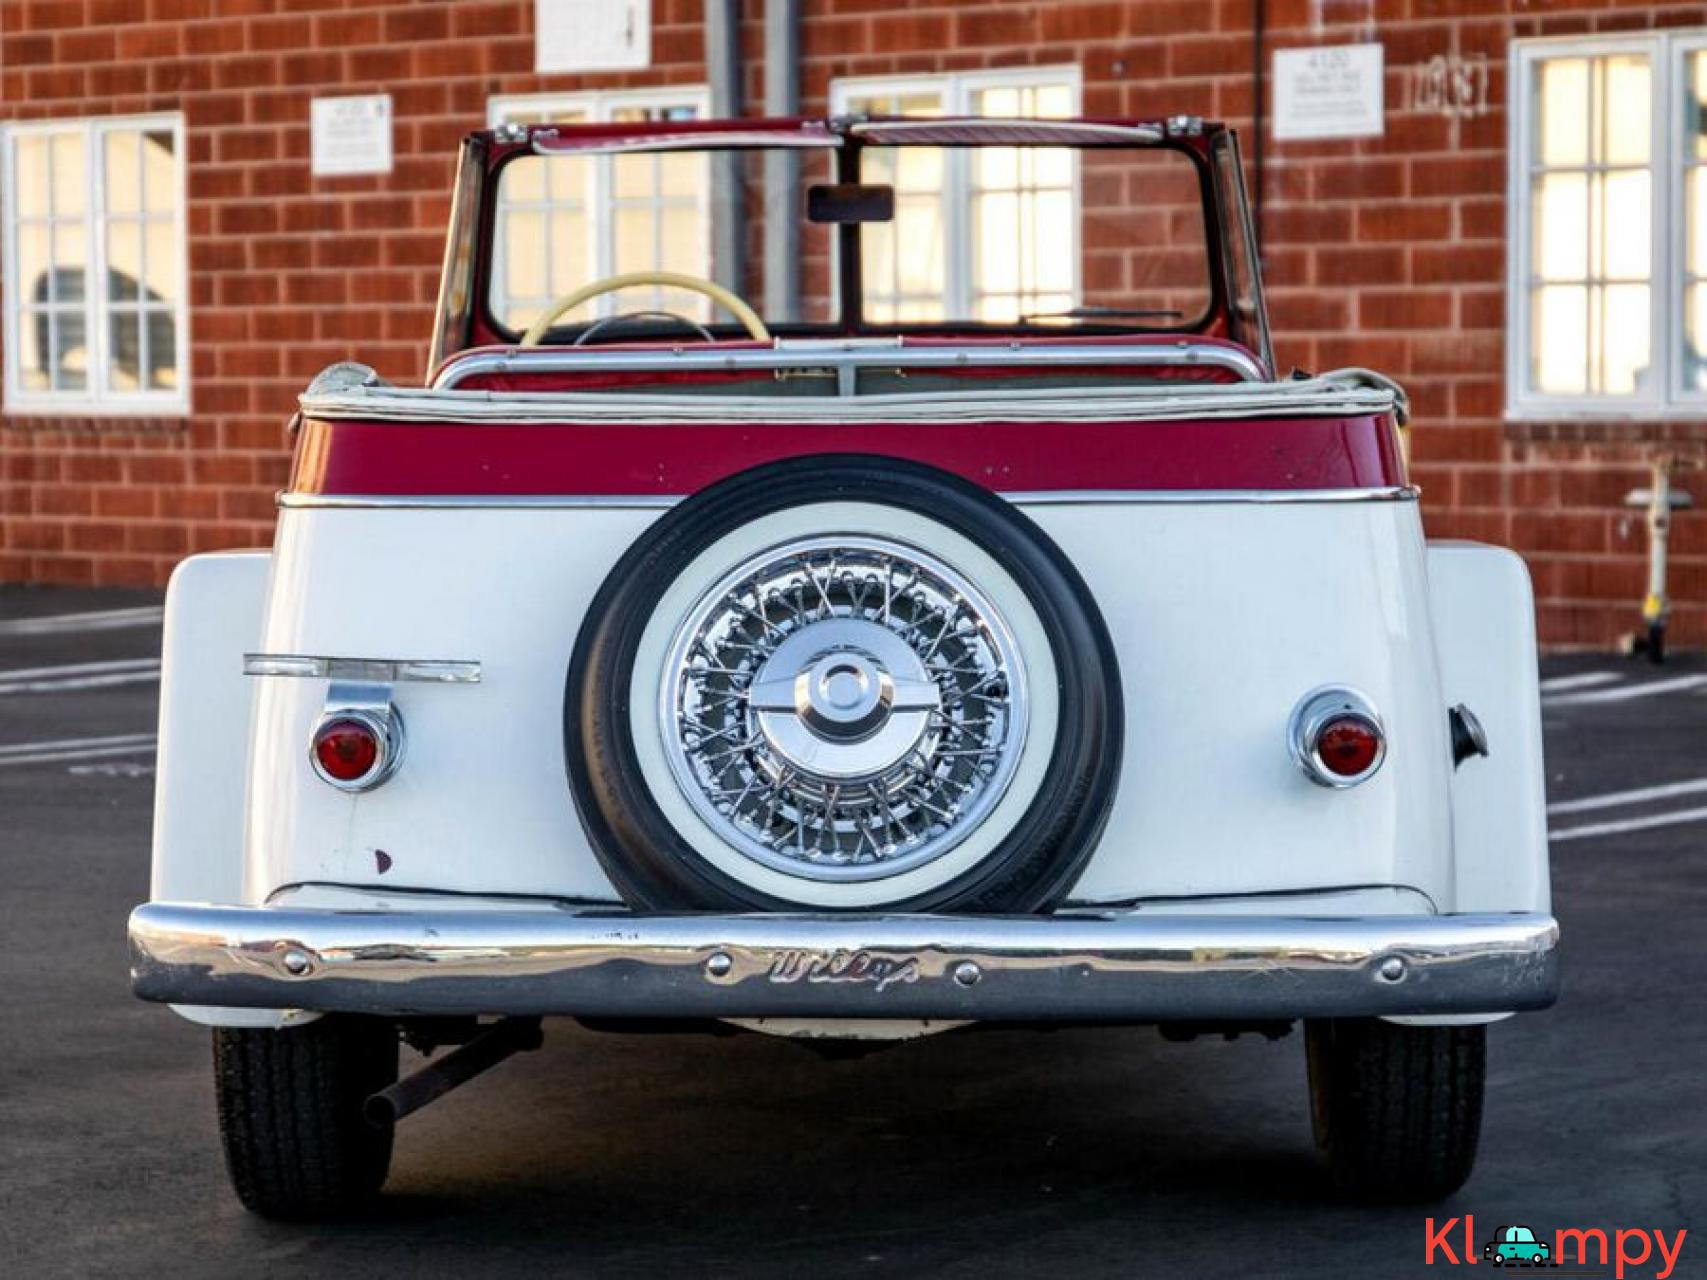 1951 Willys Jeepster Convertible 134.2 cu in 2.2 L - 4/17